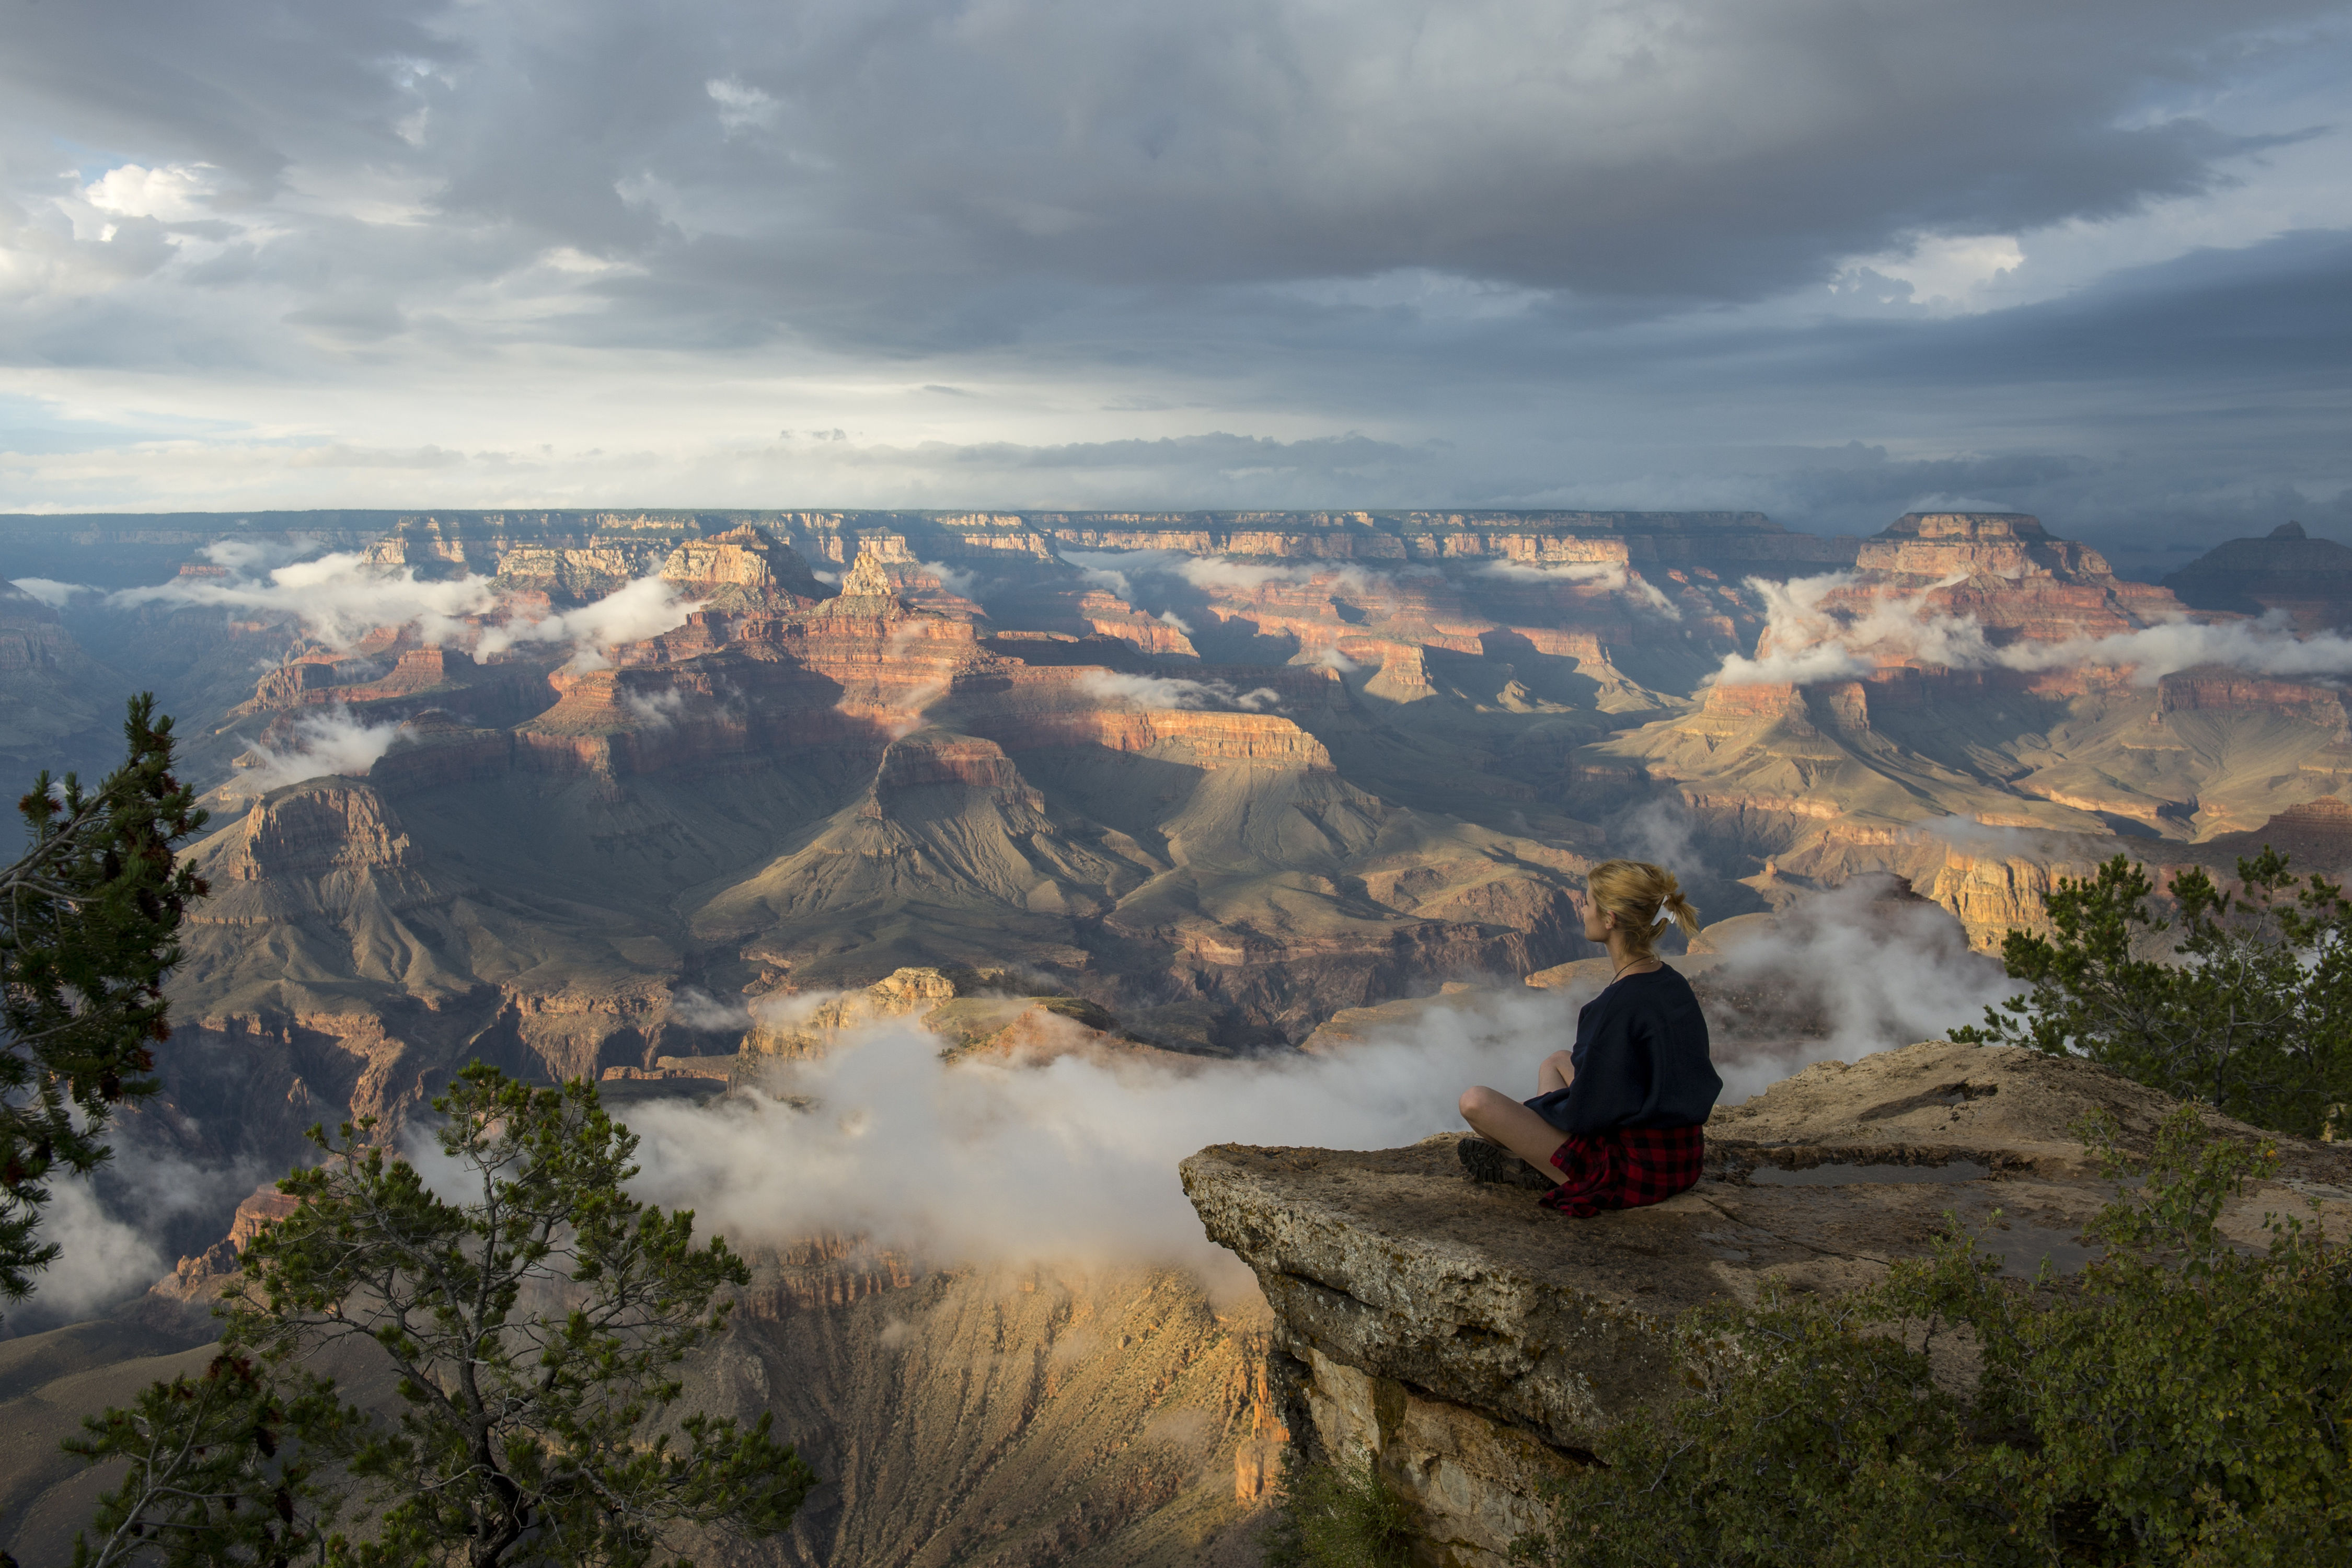 A Visit to America's National Parks Could Cost Twice as Much in 2018